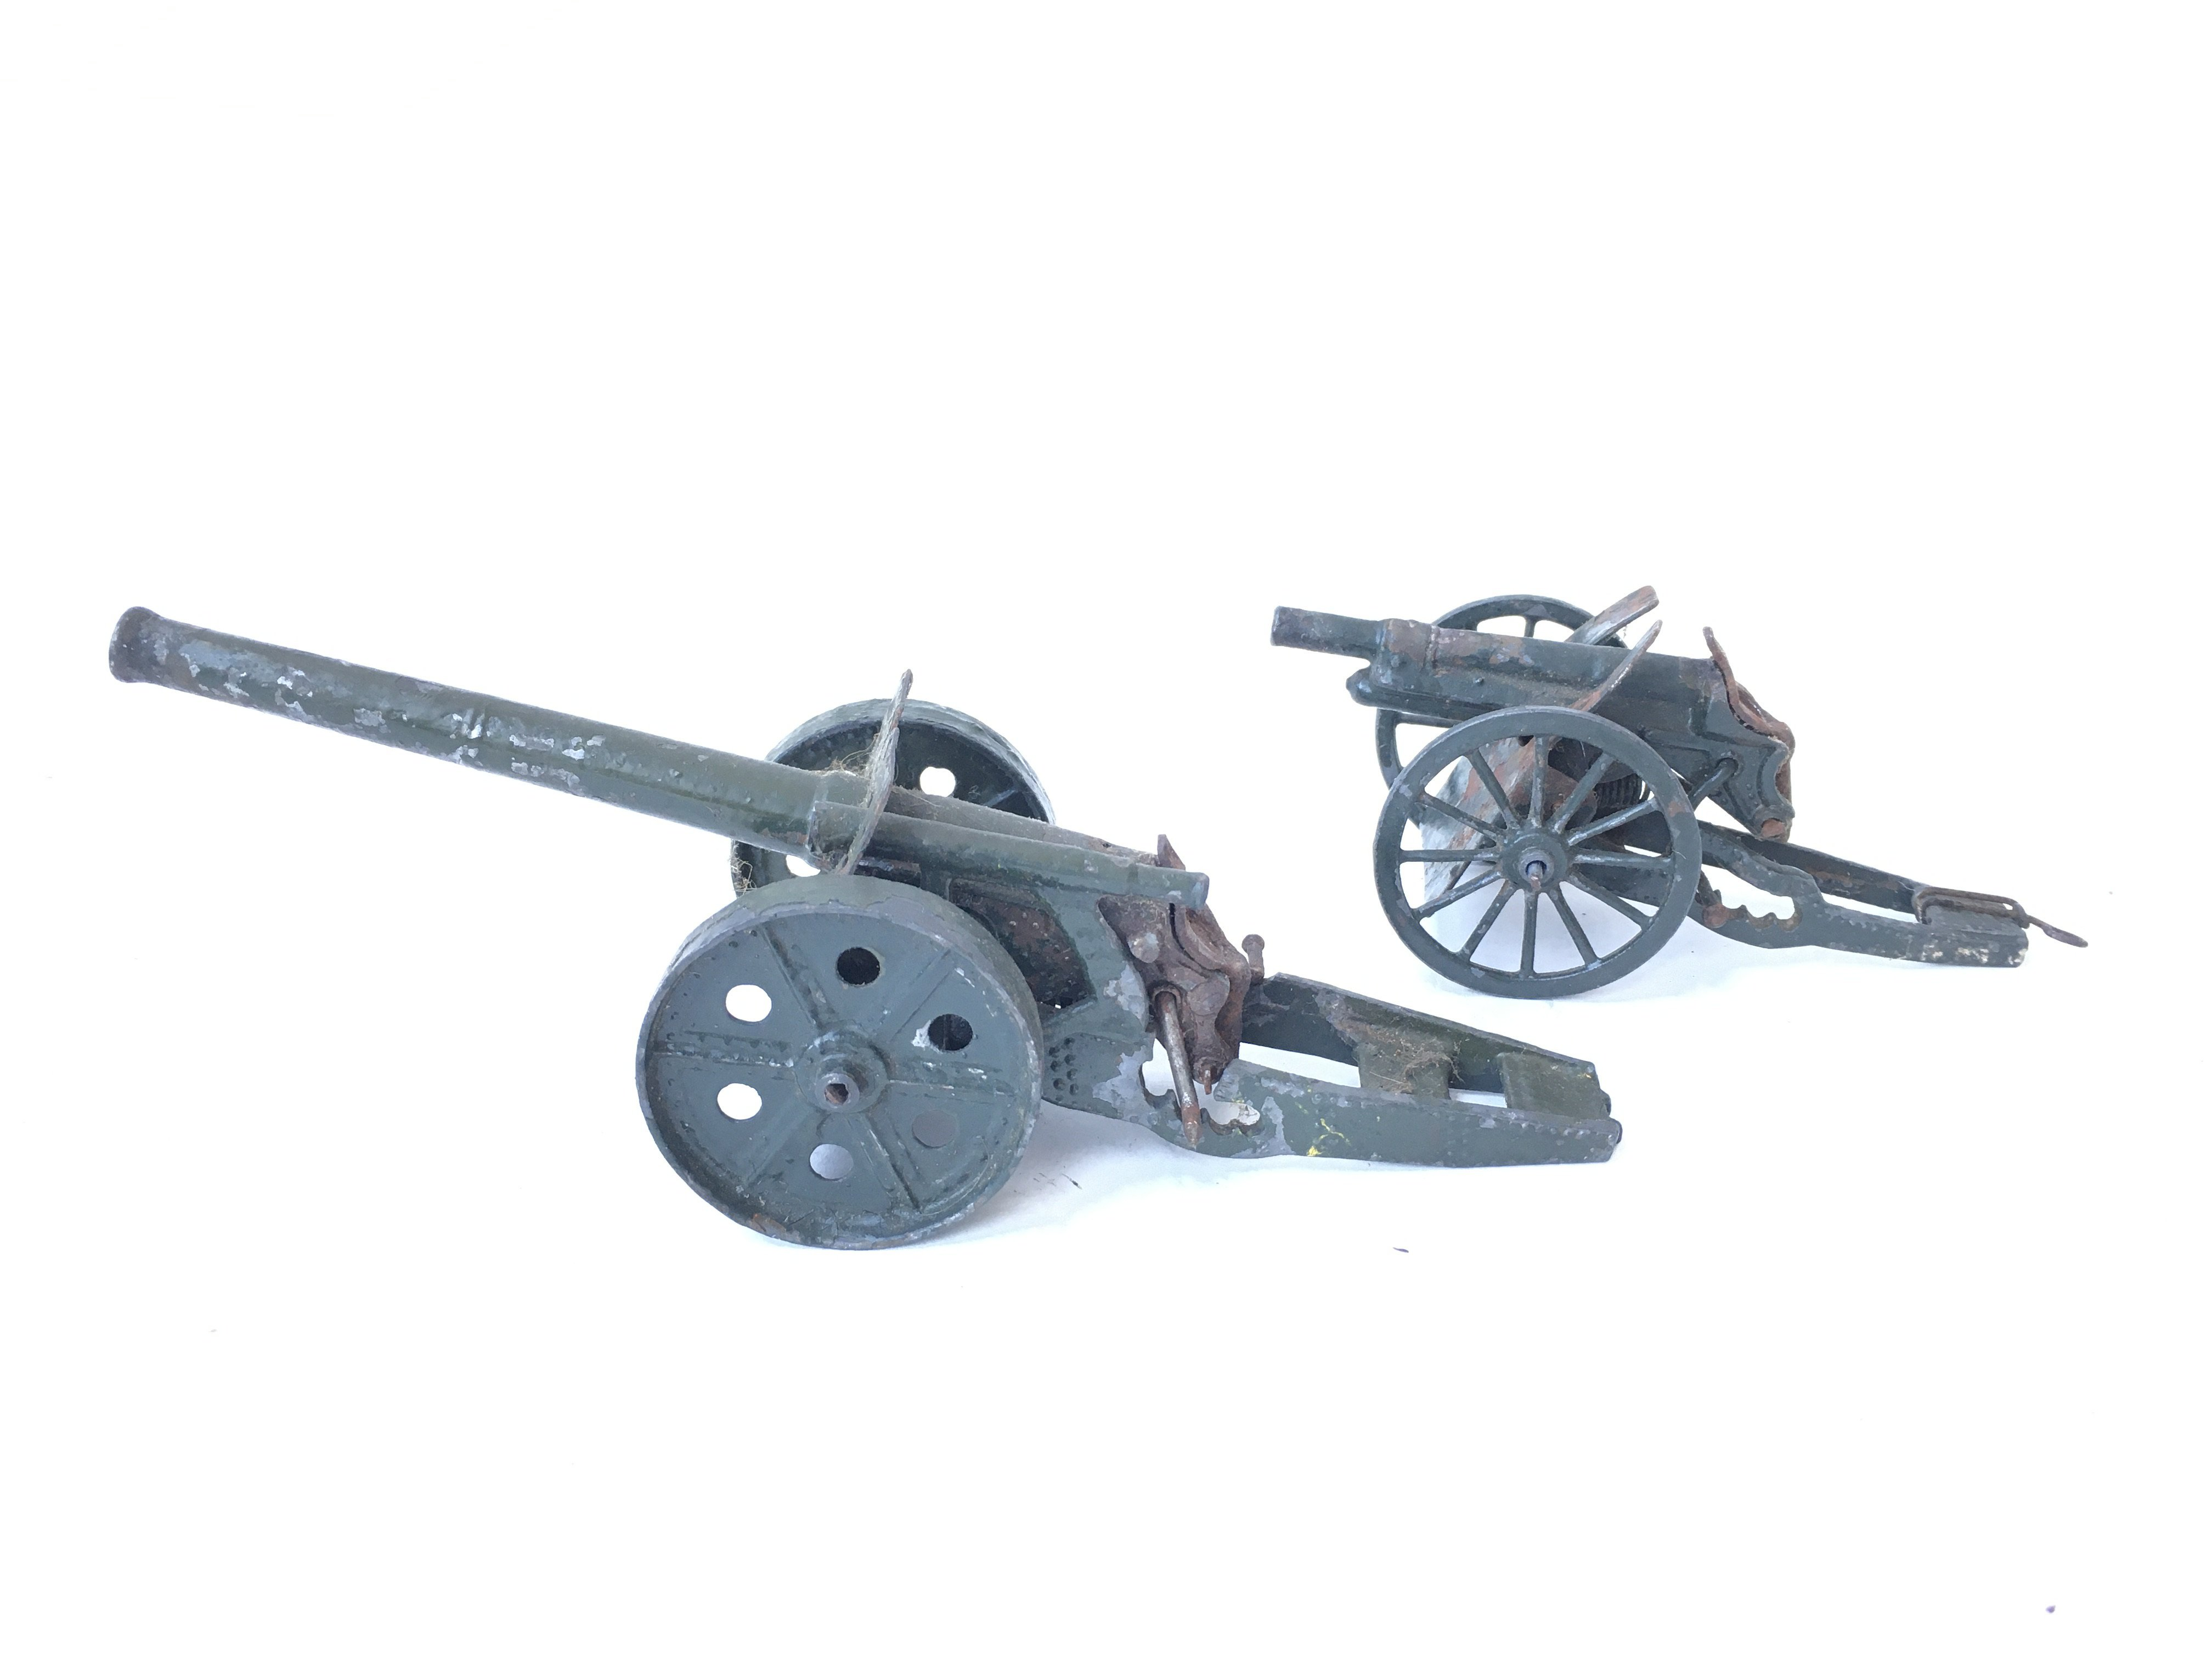 A Britain's Cannon and one other (Unmarked)